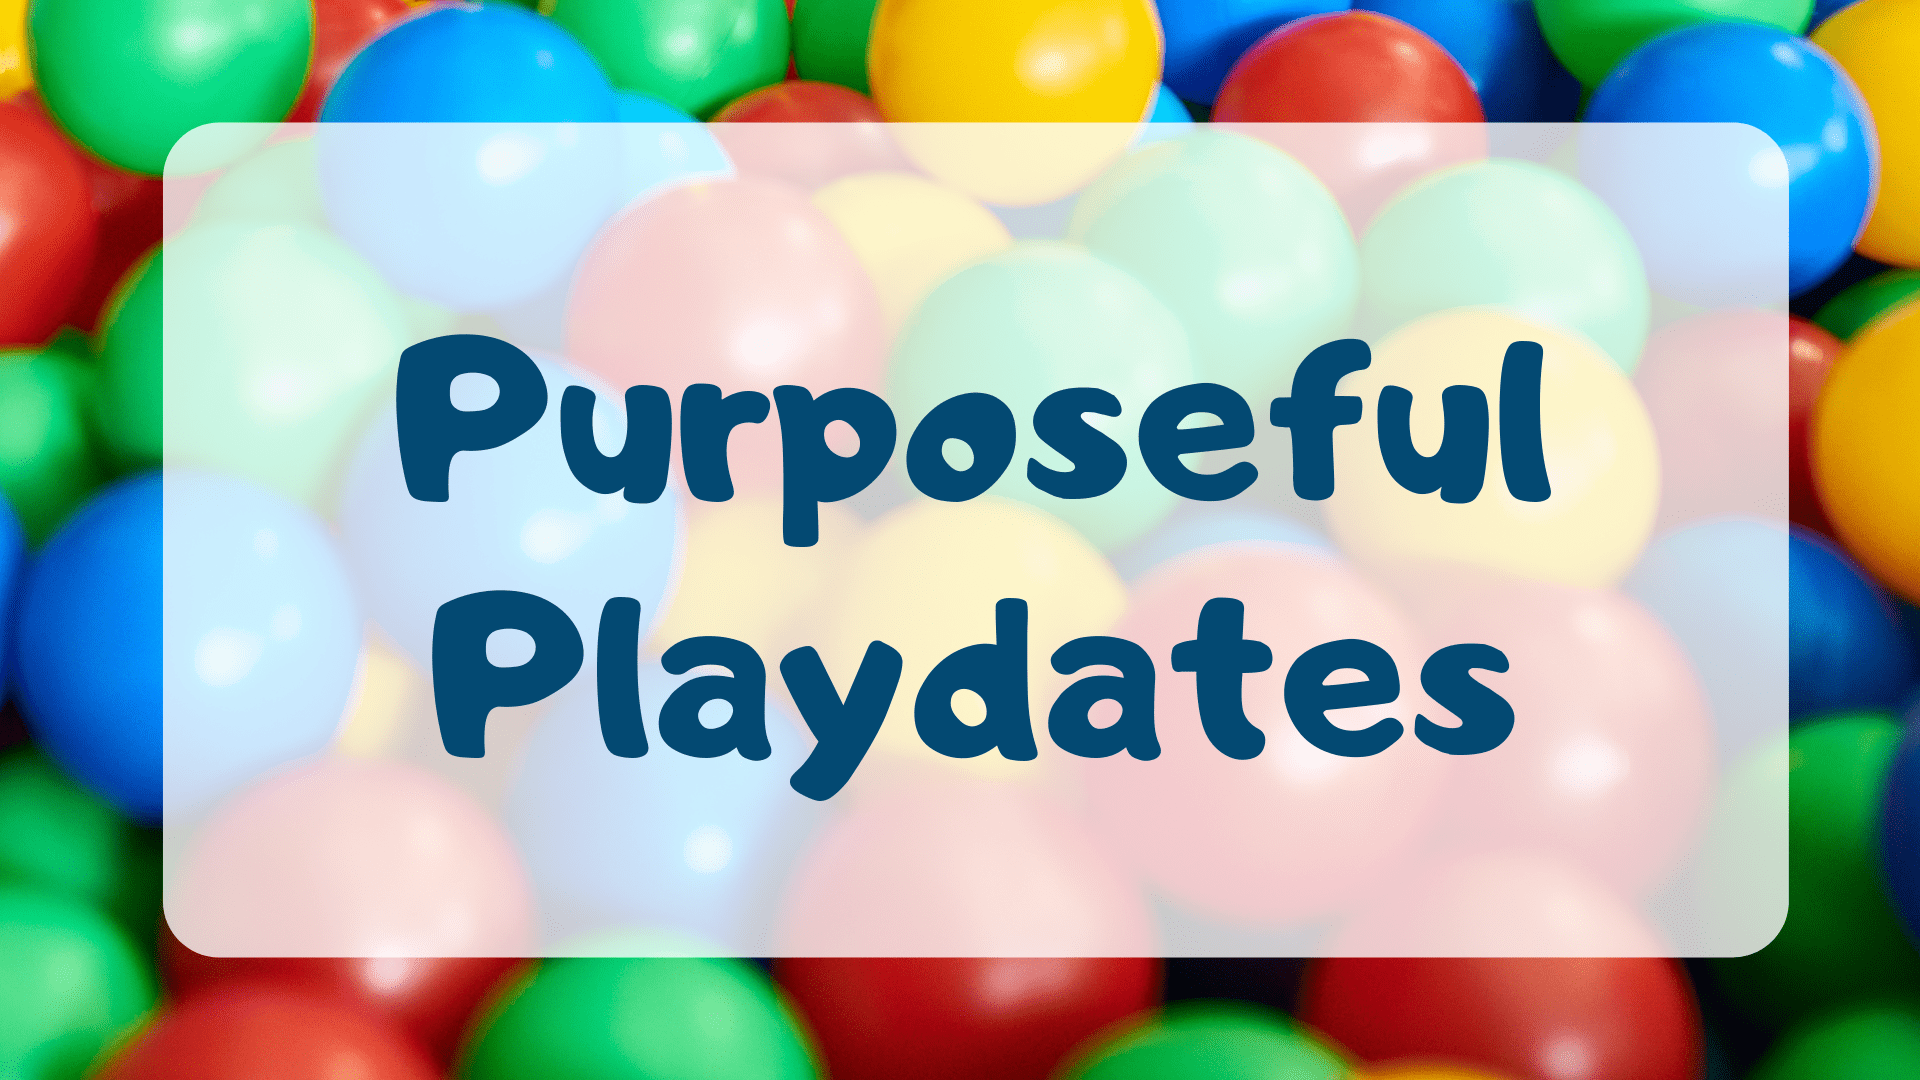 Purposeful Playdates